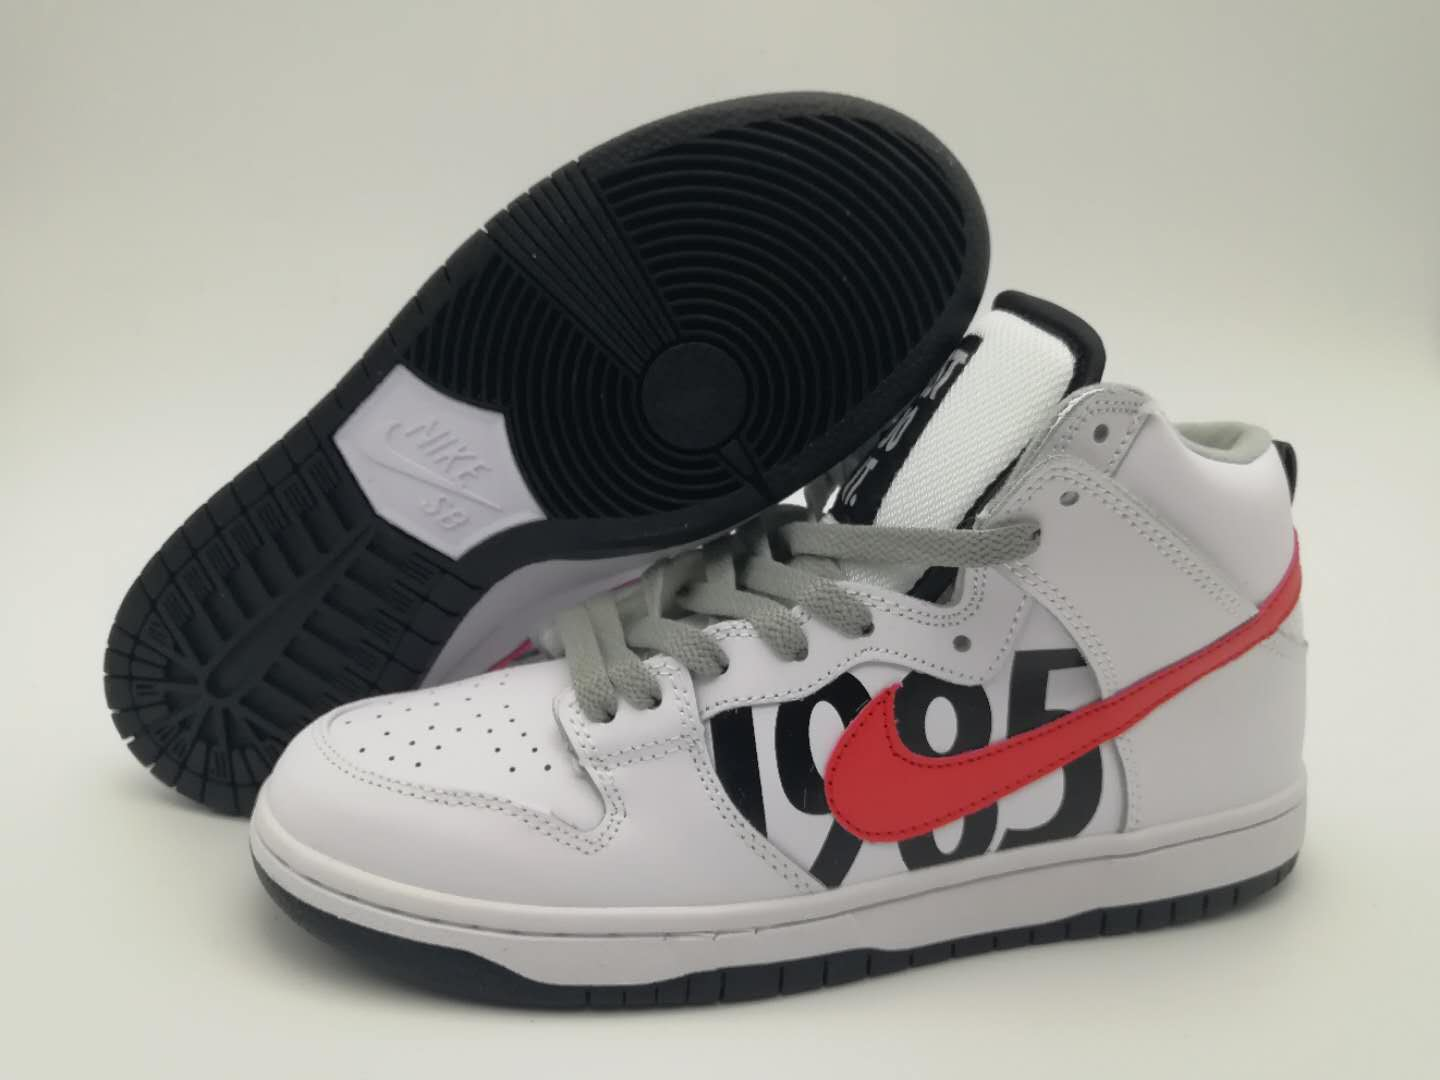 Women UNDFTD x Nike Dunk Lux White Black Red Shoes